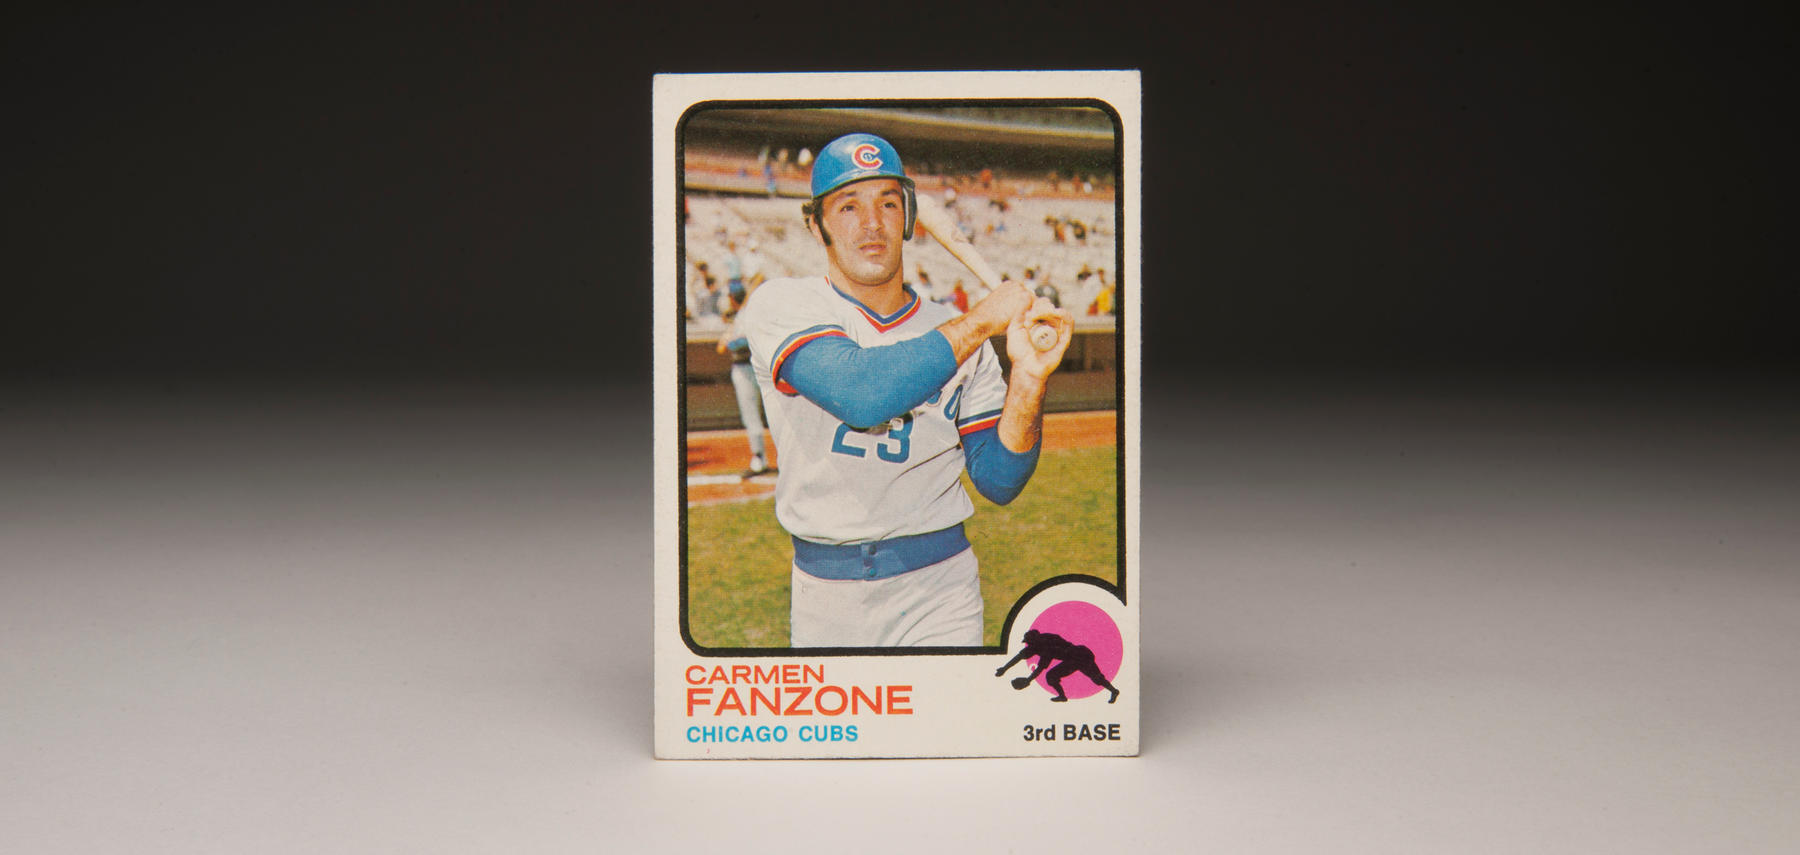 1973 Carmen Fanzone Topps card. (Milo Stewart, Jr. / National Baseball Hall of Fame)